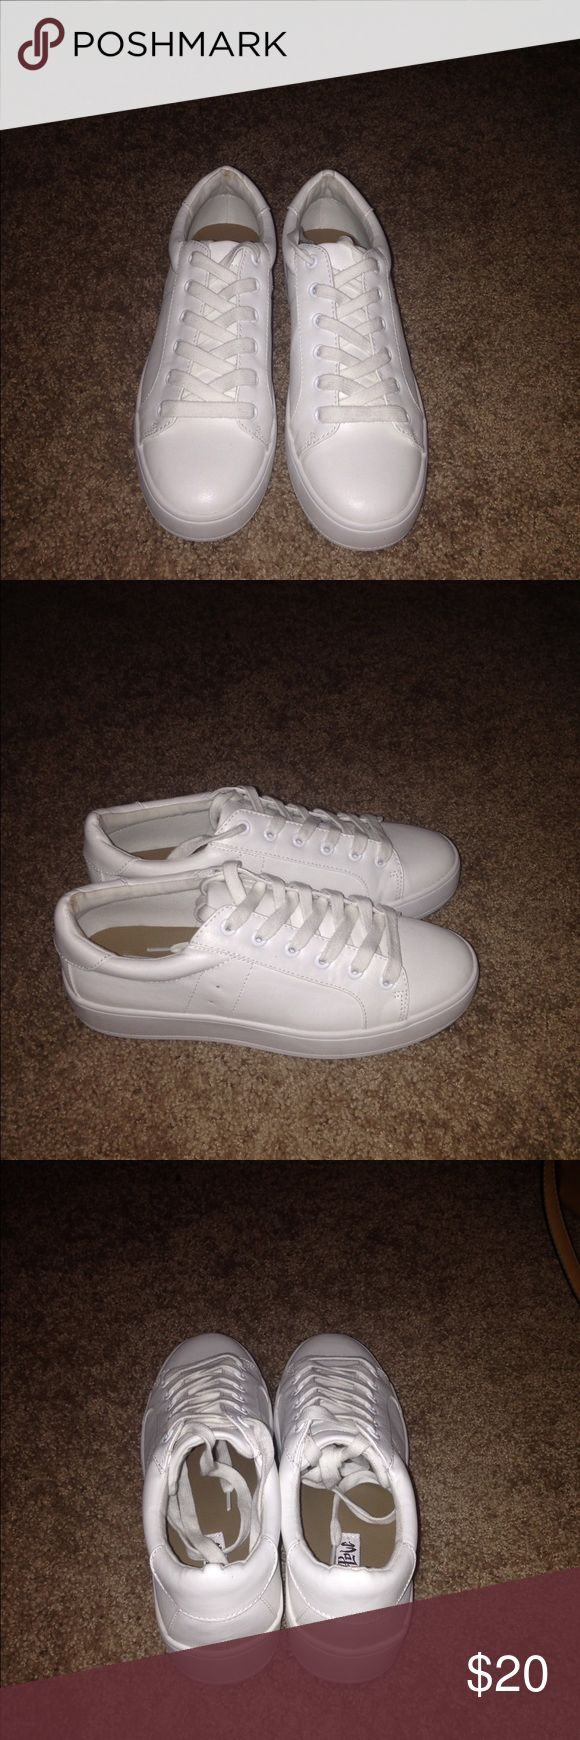 White platform sneakers White platform sneakers Shoes Sneakers